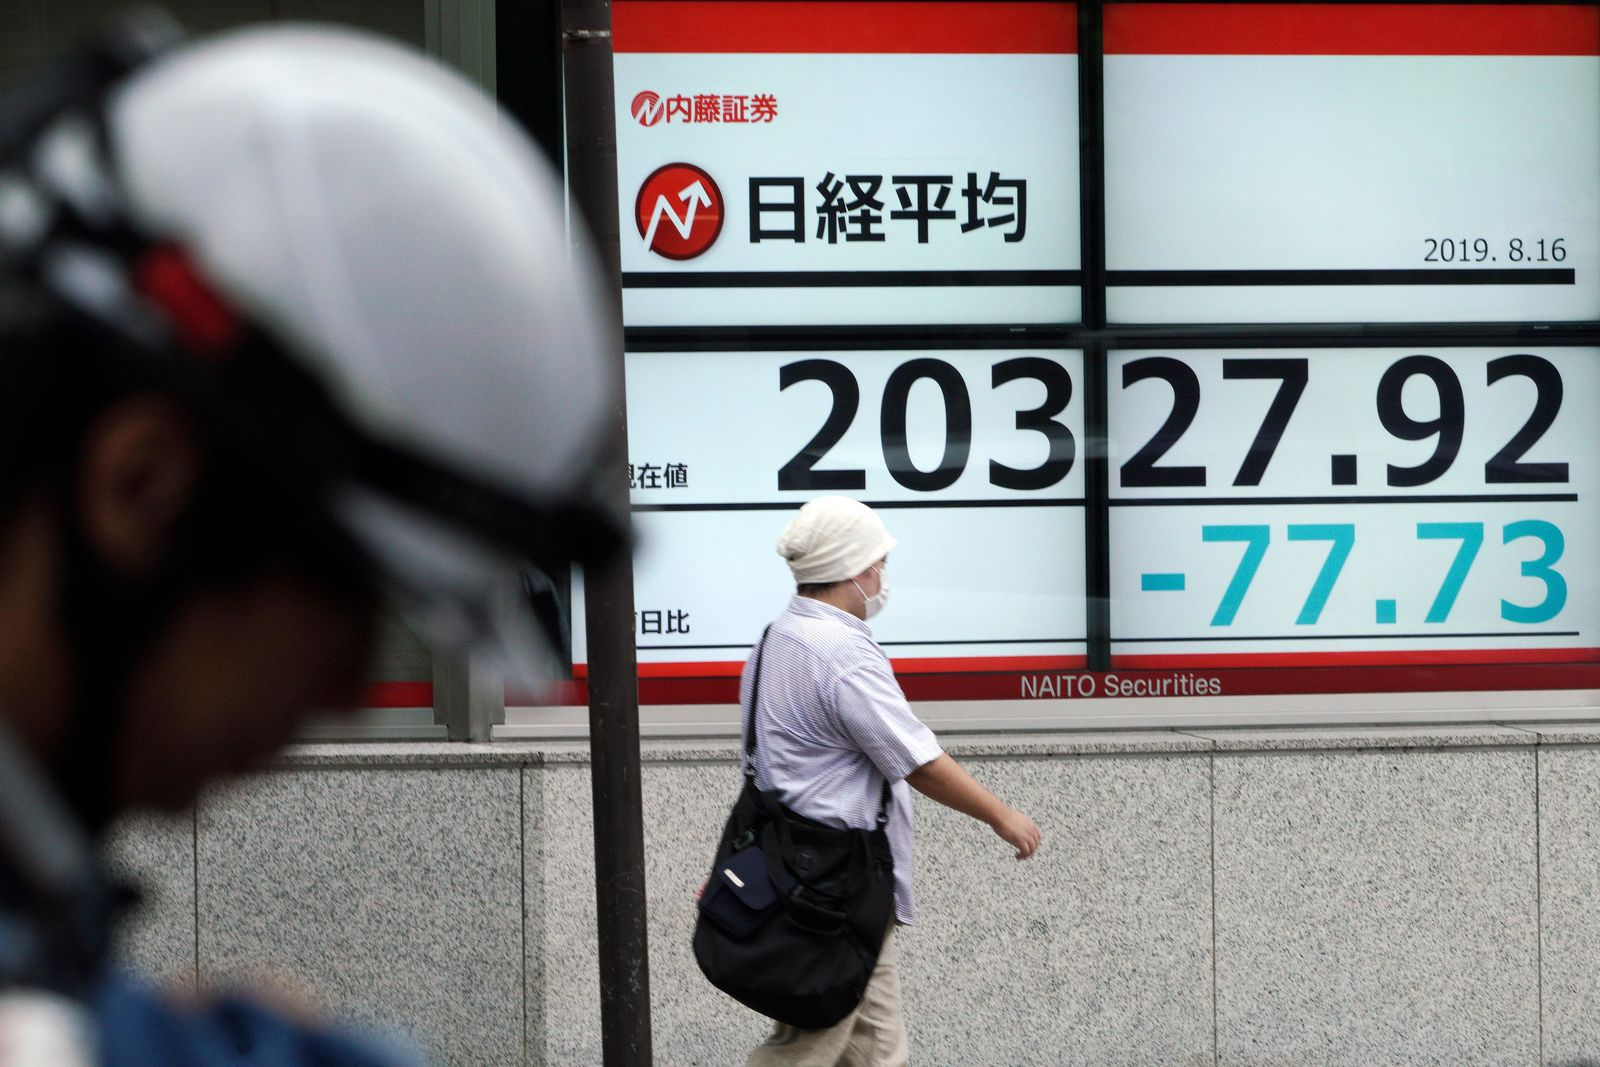 A man walks past an electronic stock board showing Japan's Nikkei 225 index at a securities firm in Tokyo Friday, Aug. 16, 2019. Asian shares were mixed Friday as turbulence continued on global markets amid ongoing worries about U.S.-China trade conflict. (AP Photo/Eugene Hoshiko)